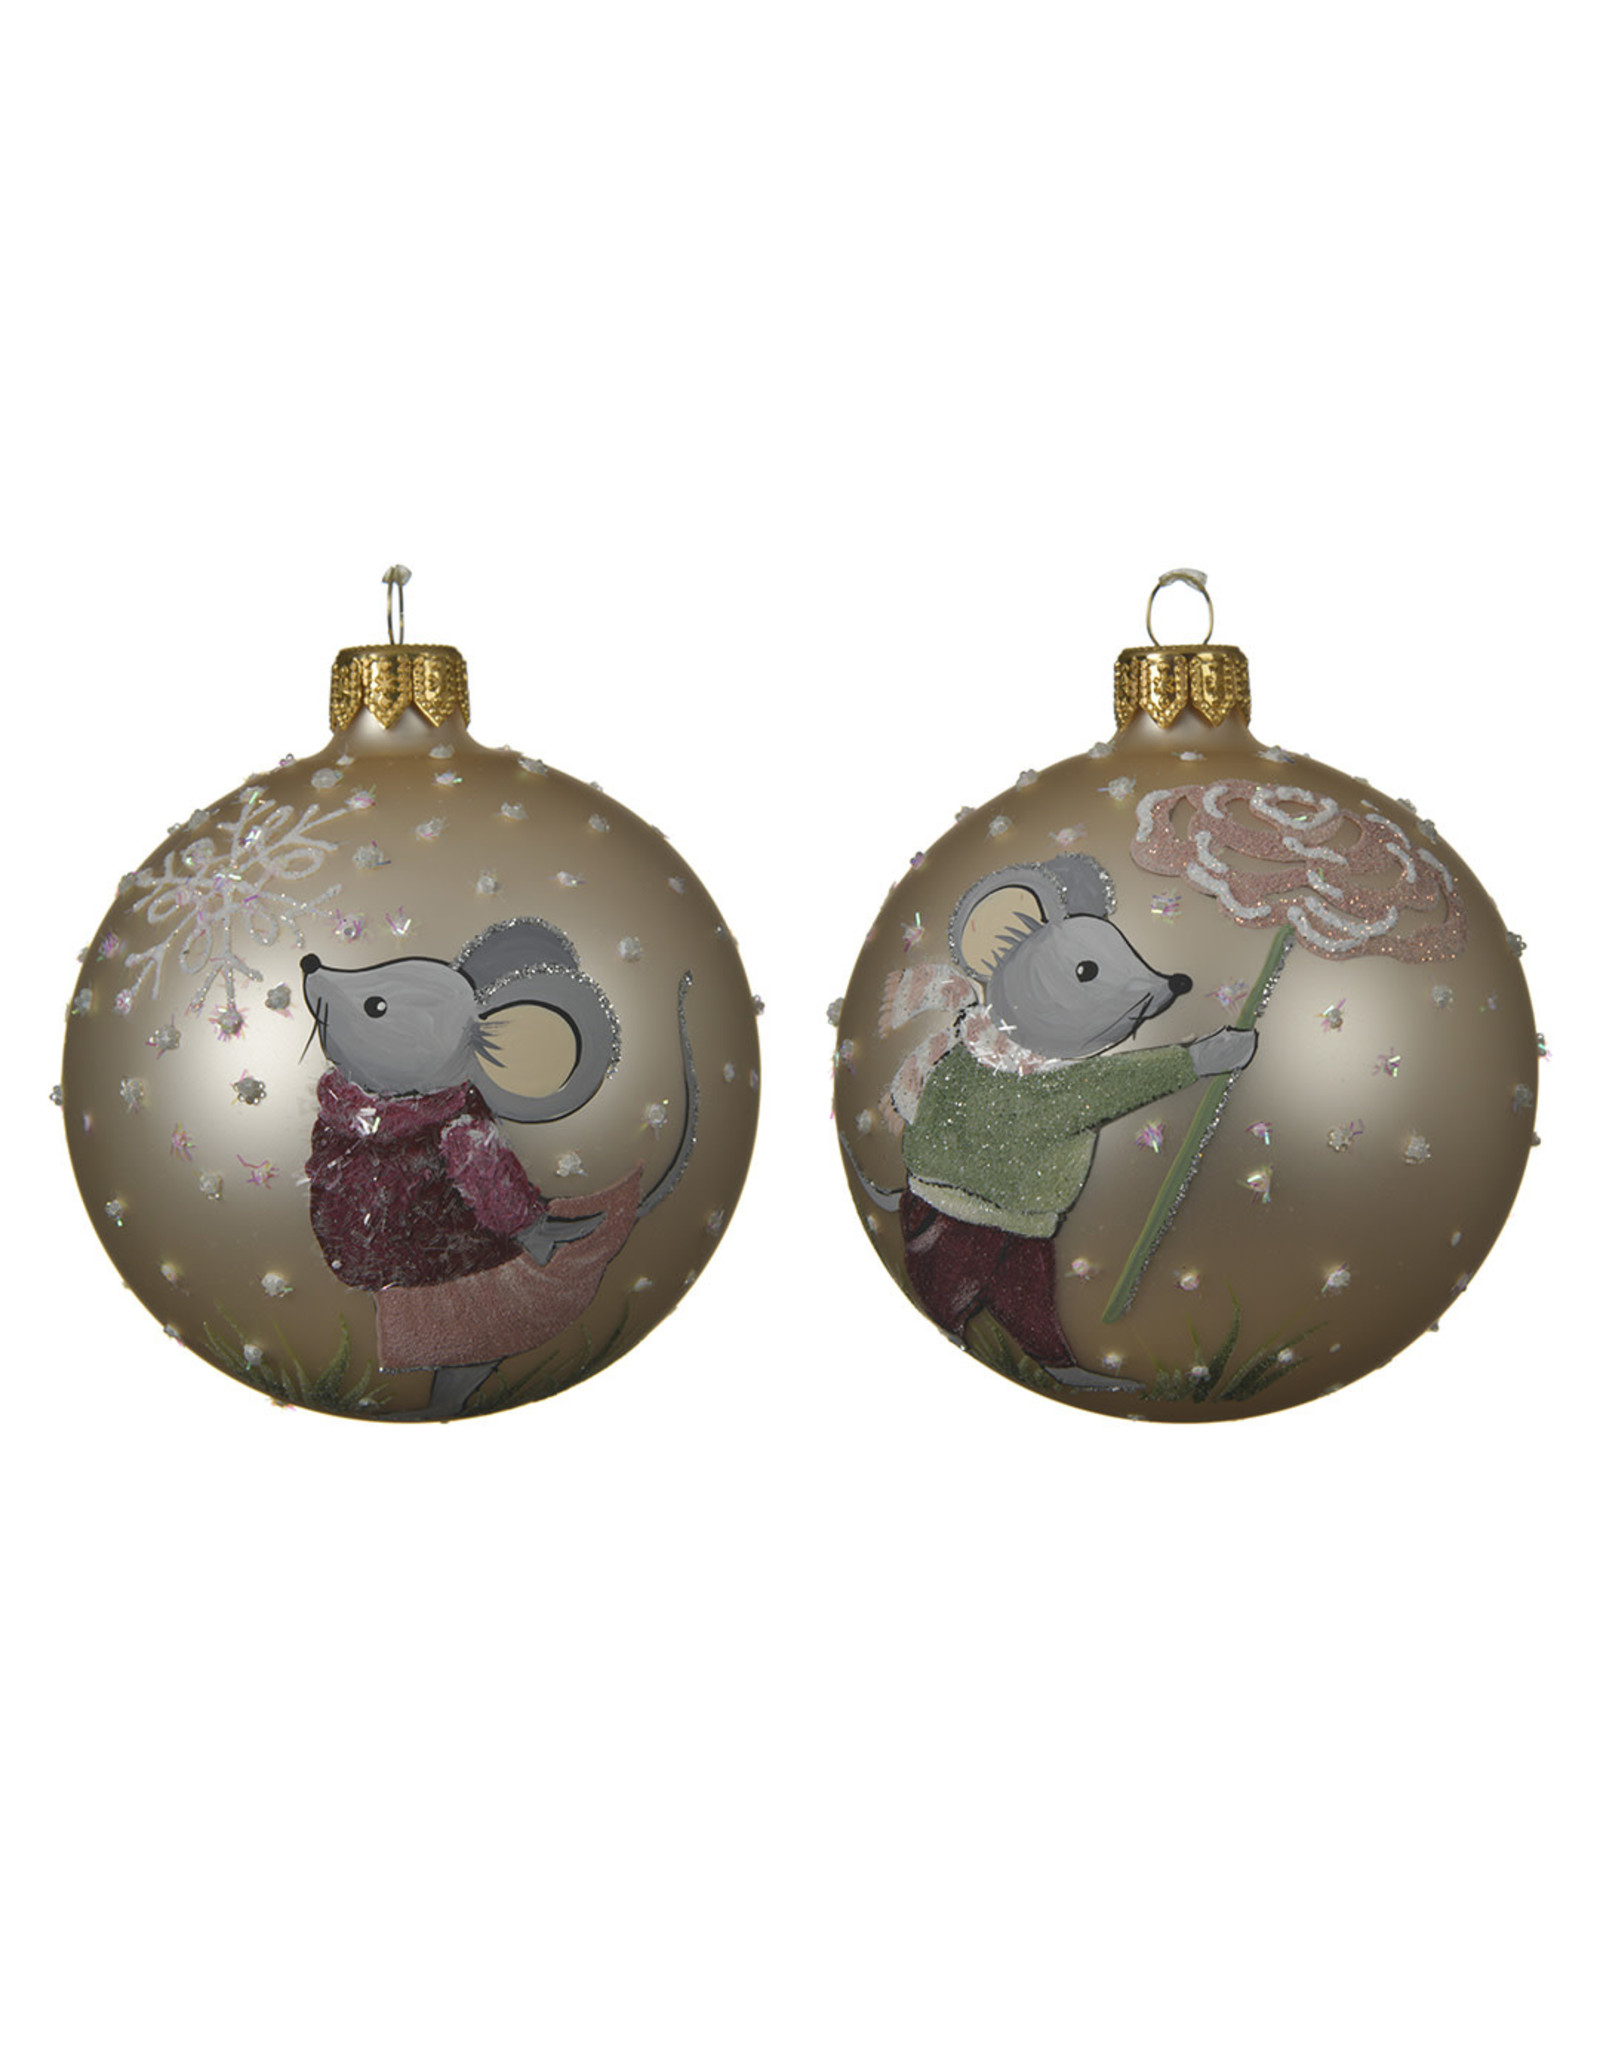 Kaemingk Glass ornament with mouse in snow